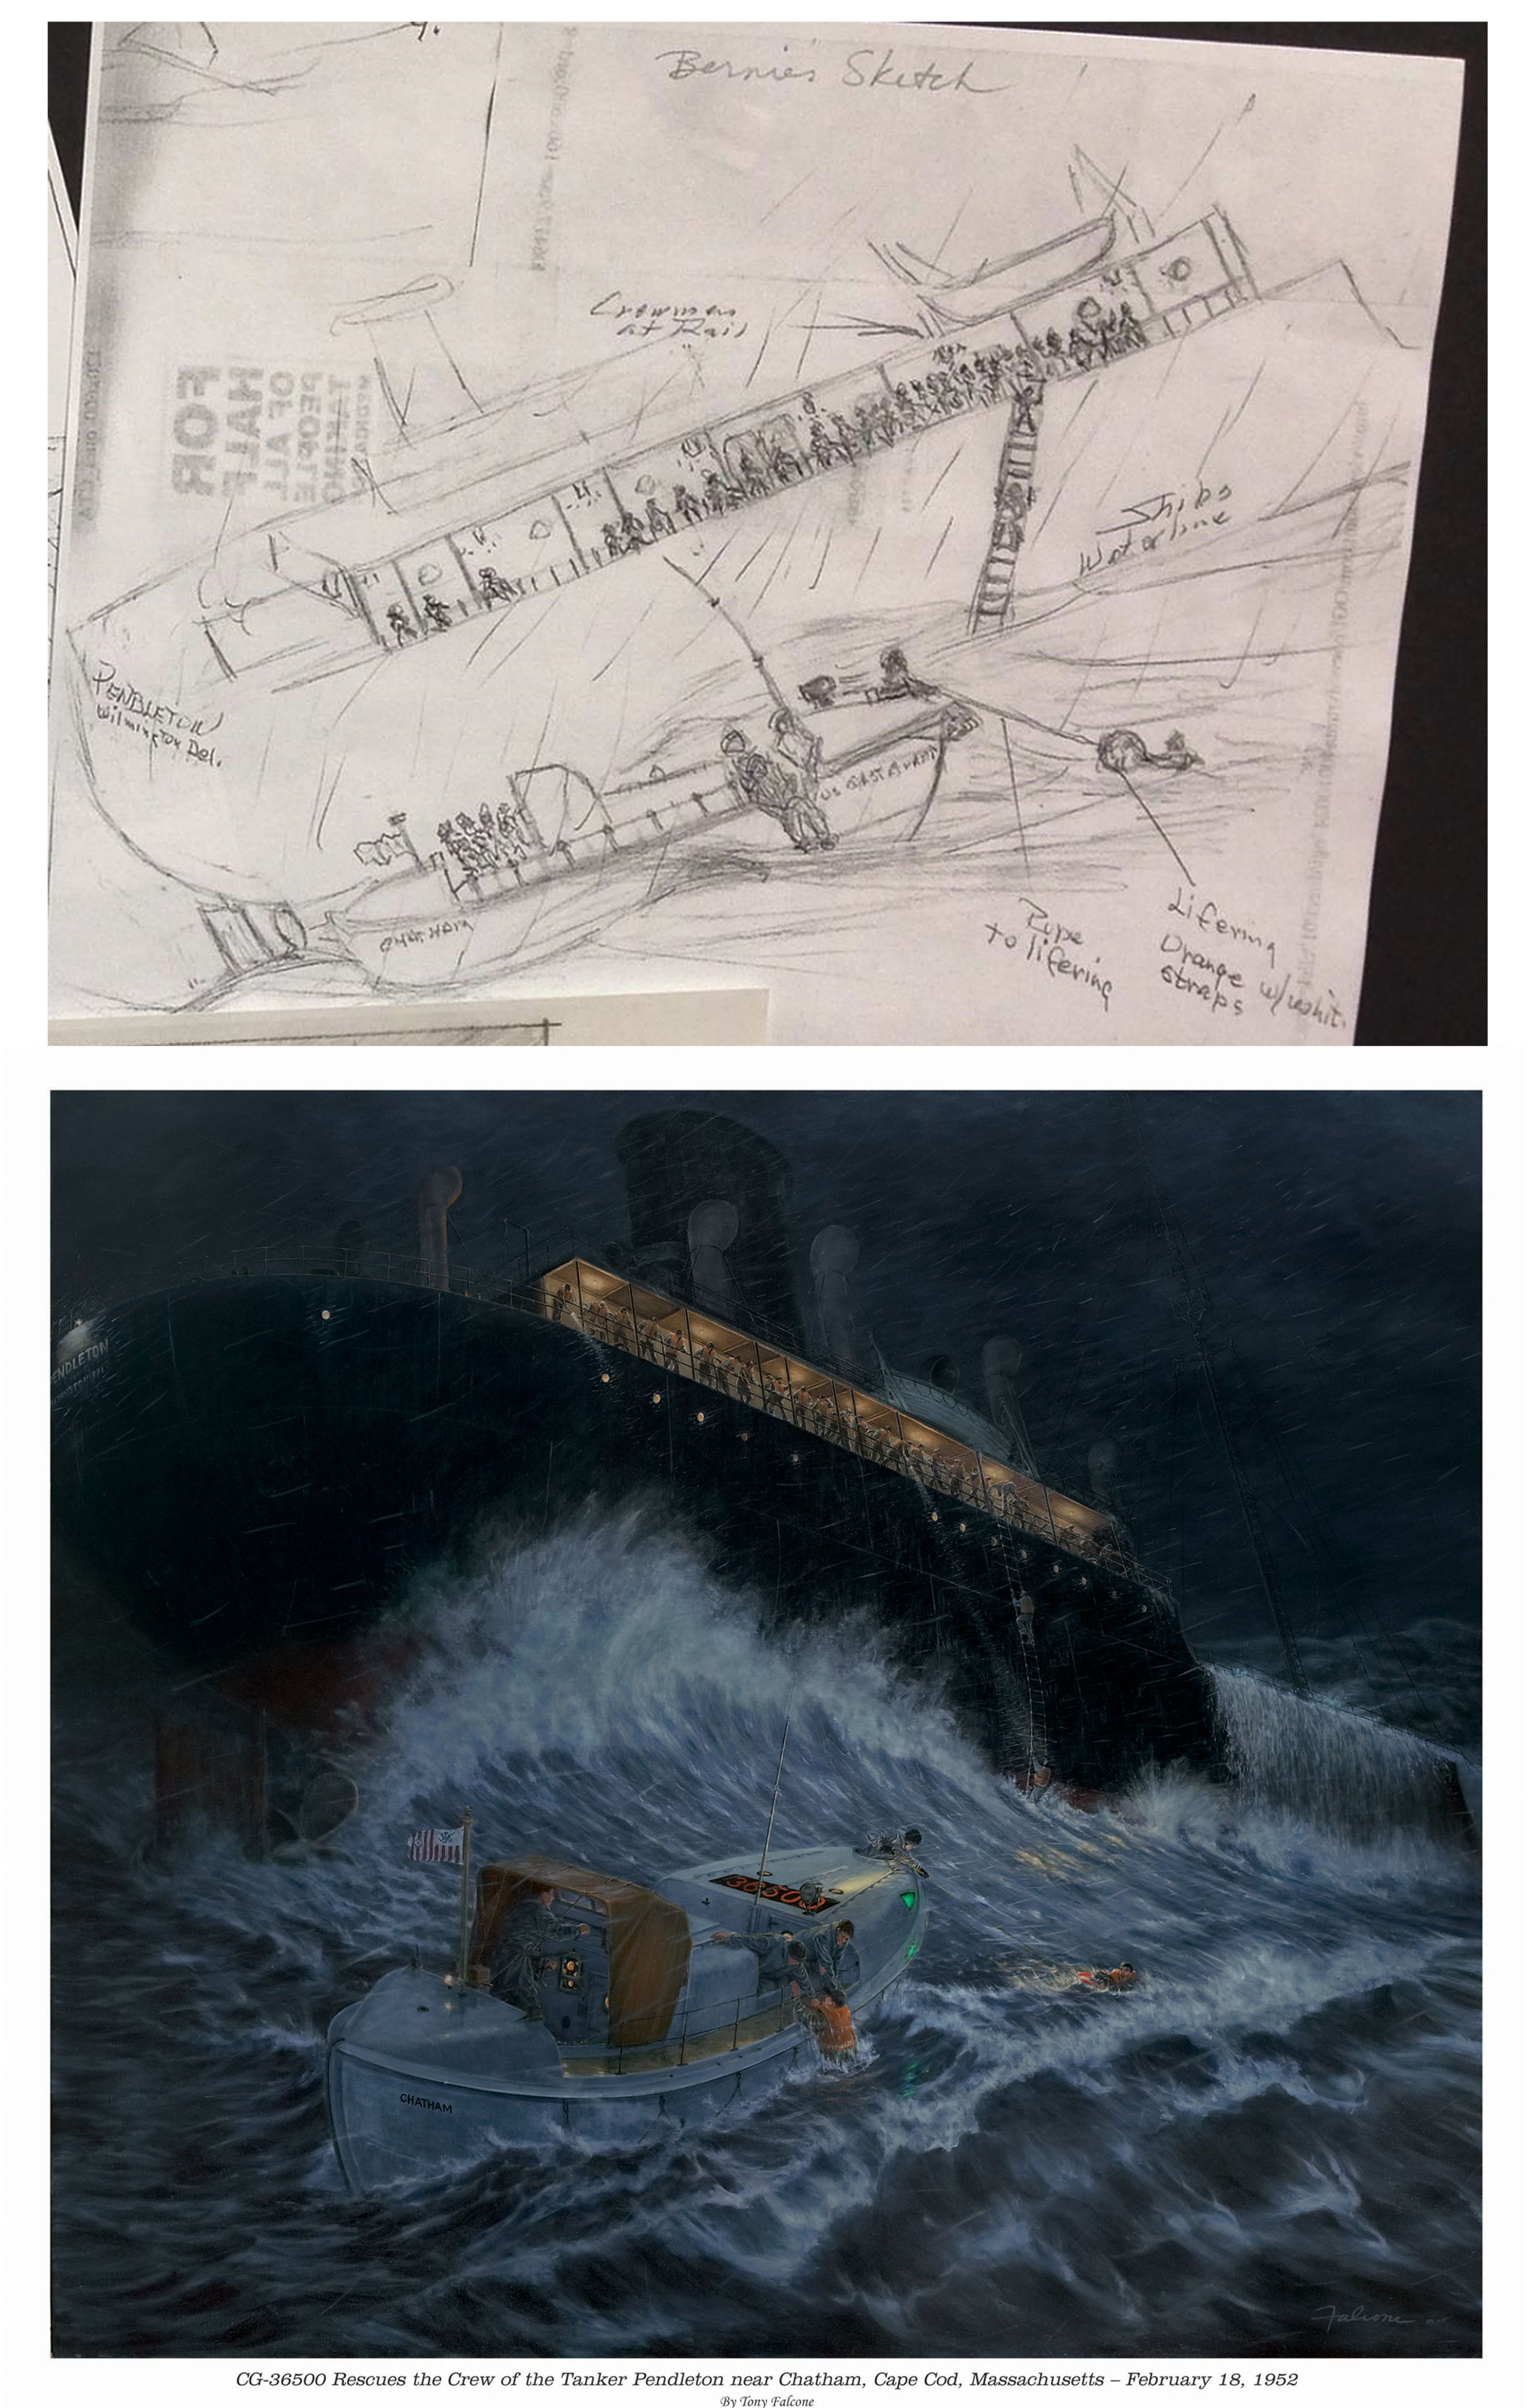 Pin by Susan Mulgrew on CG36500 - The Finest Hours | Chatham